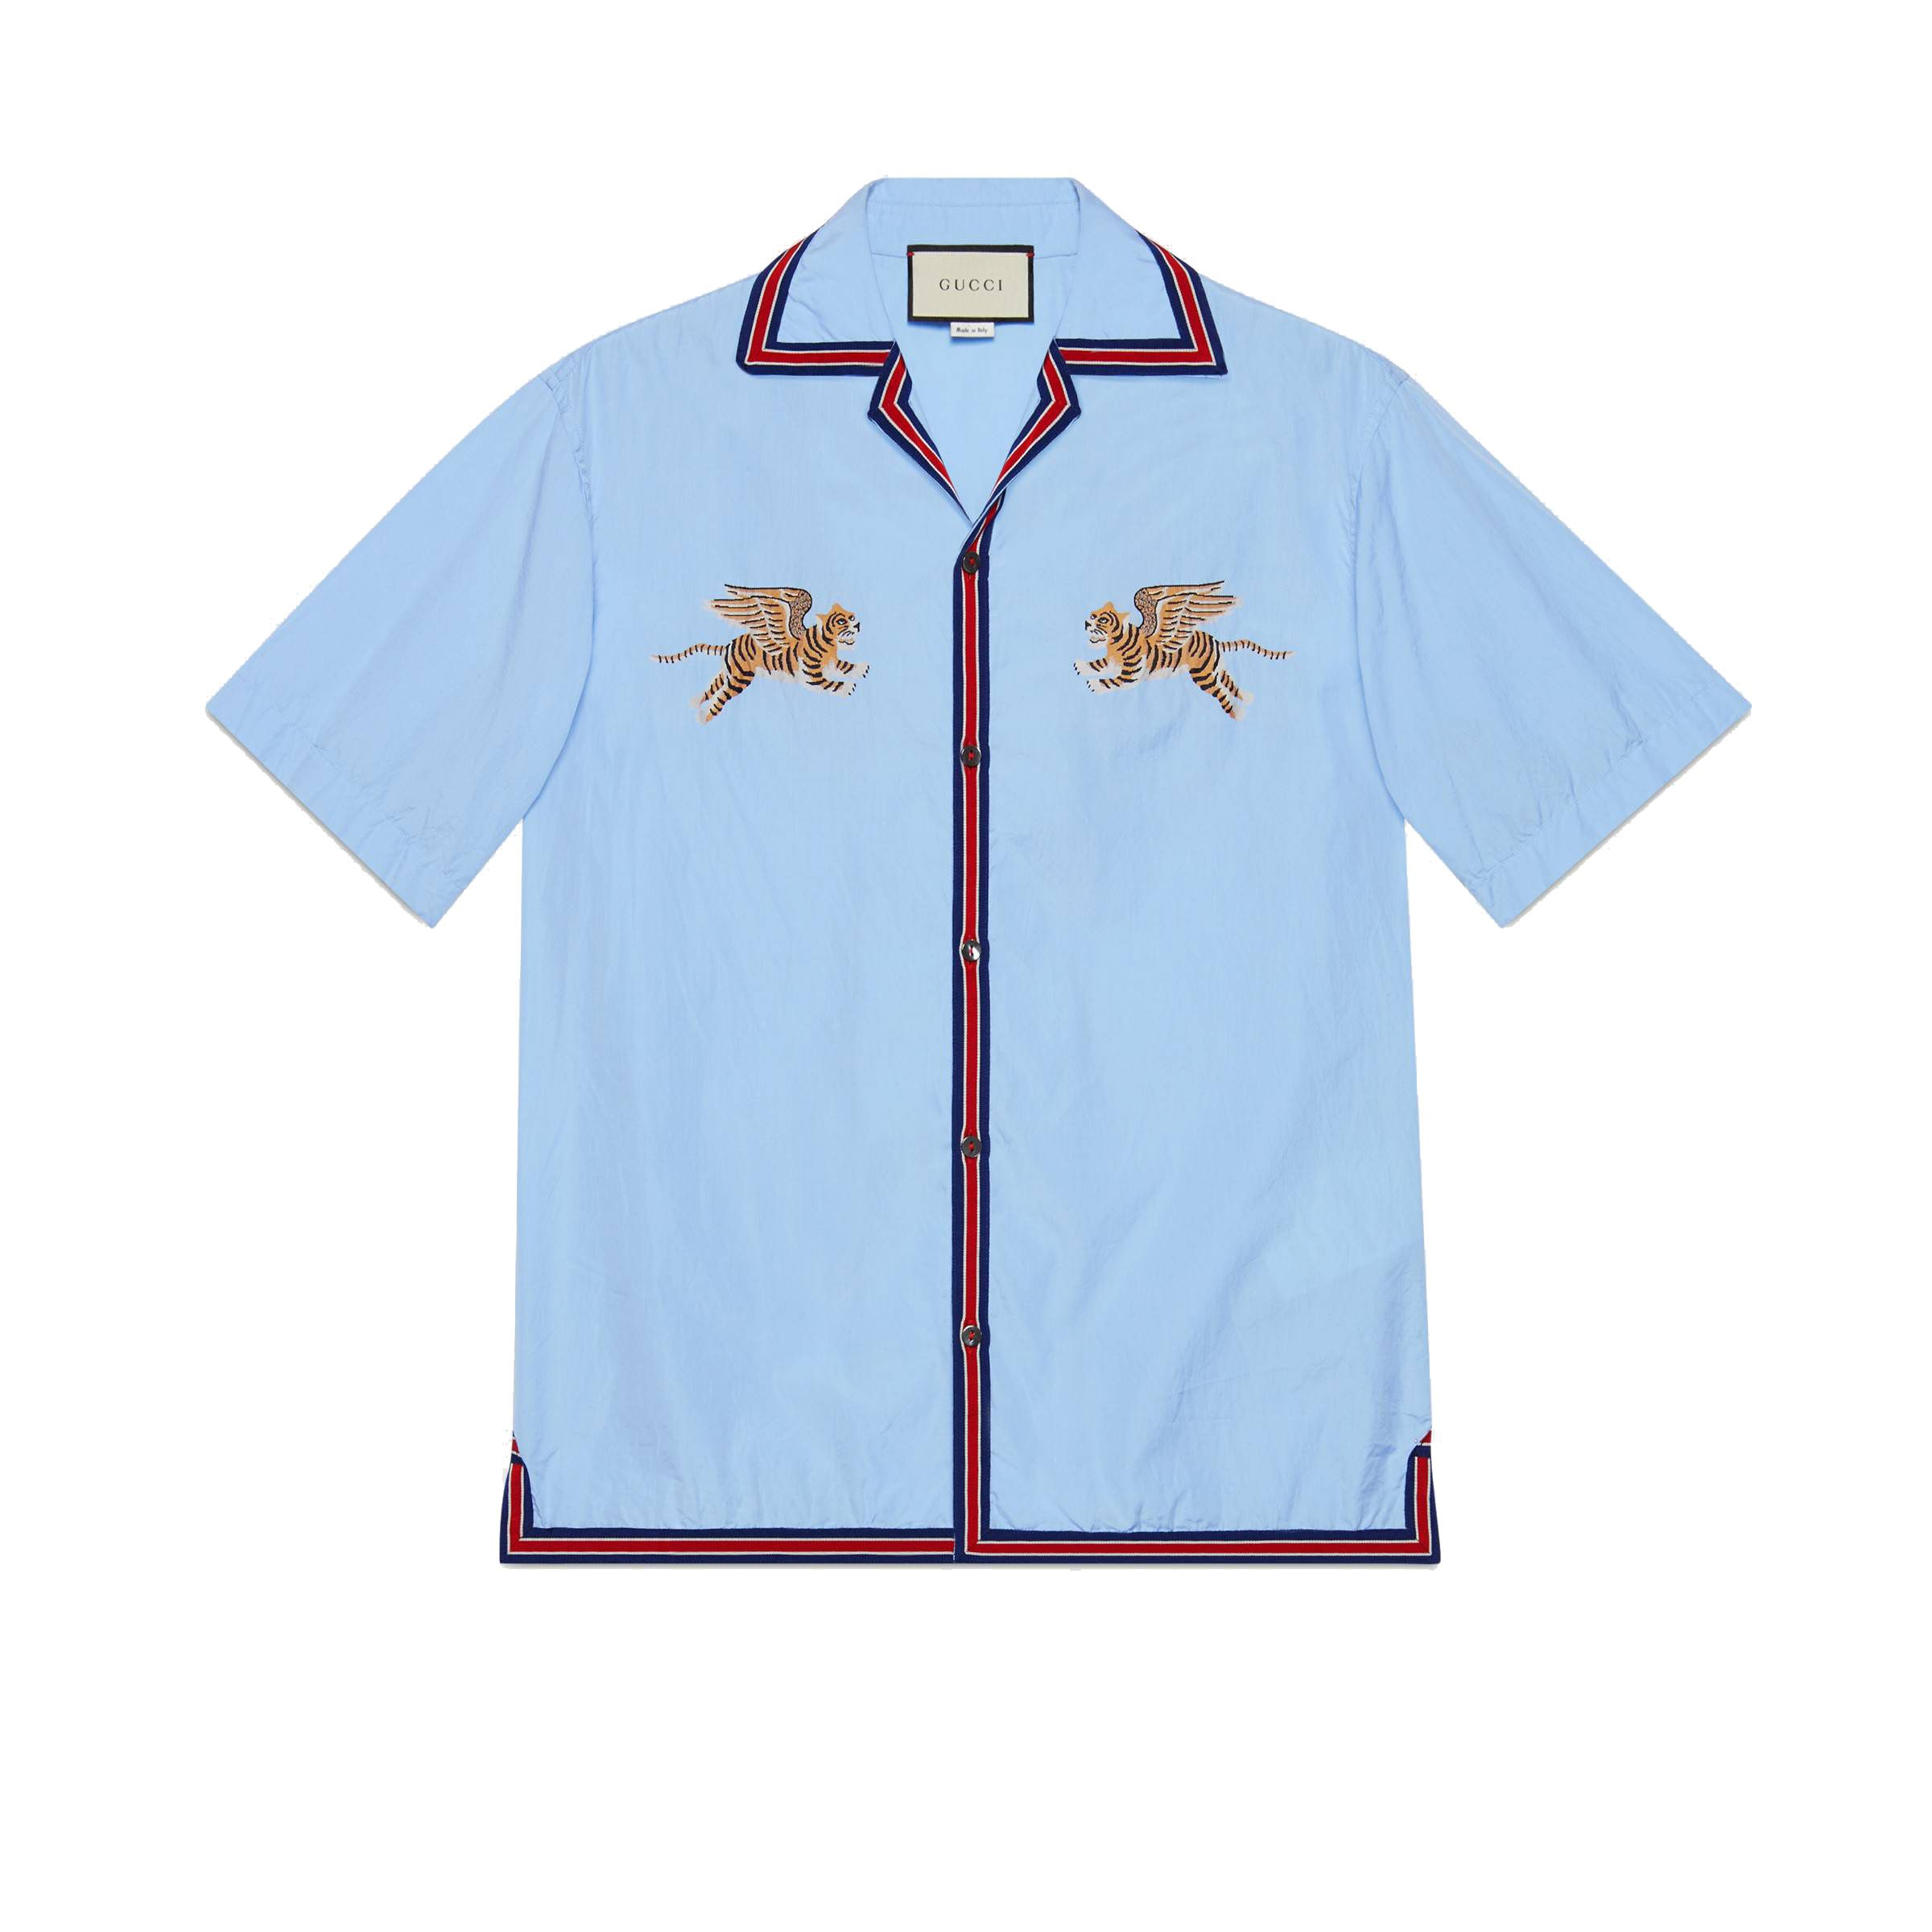 Gucci Light Blue Cotton Shirt